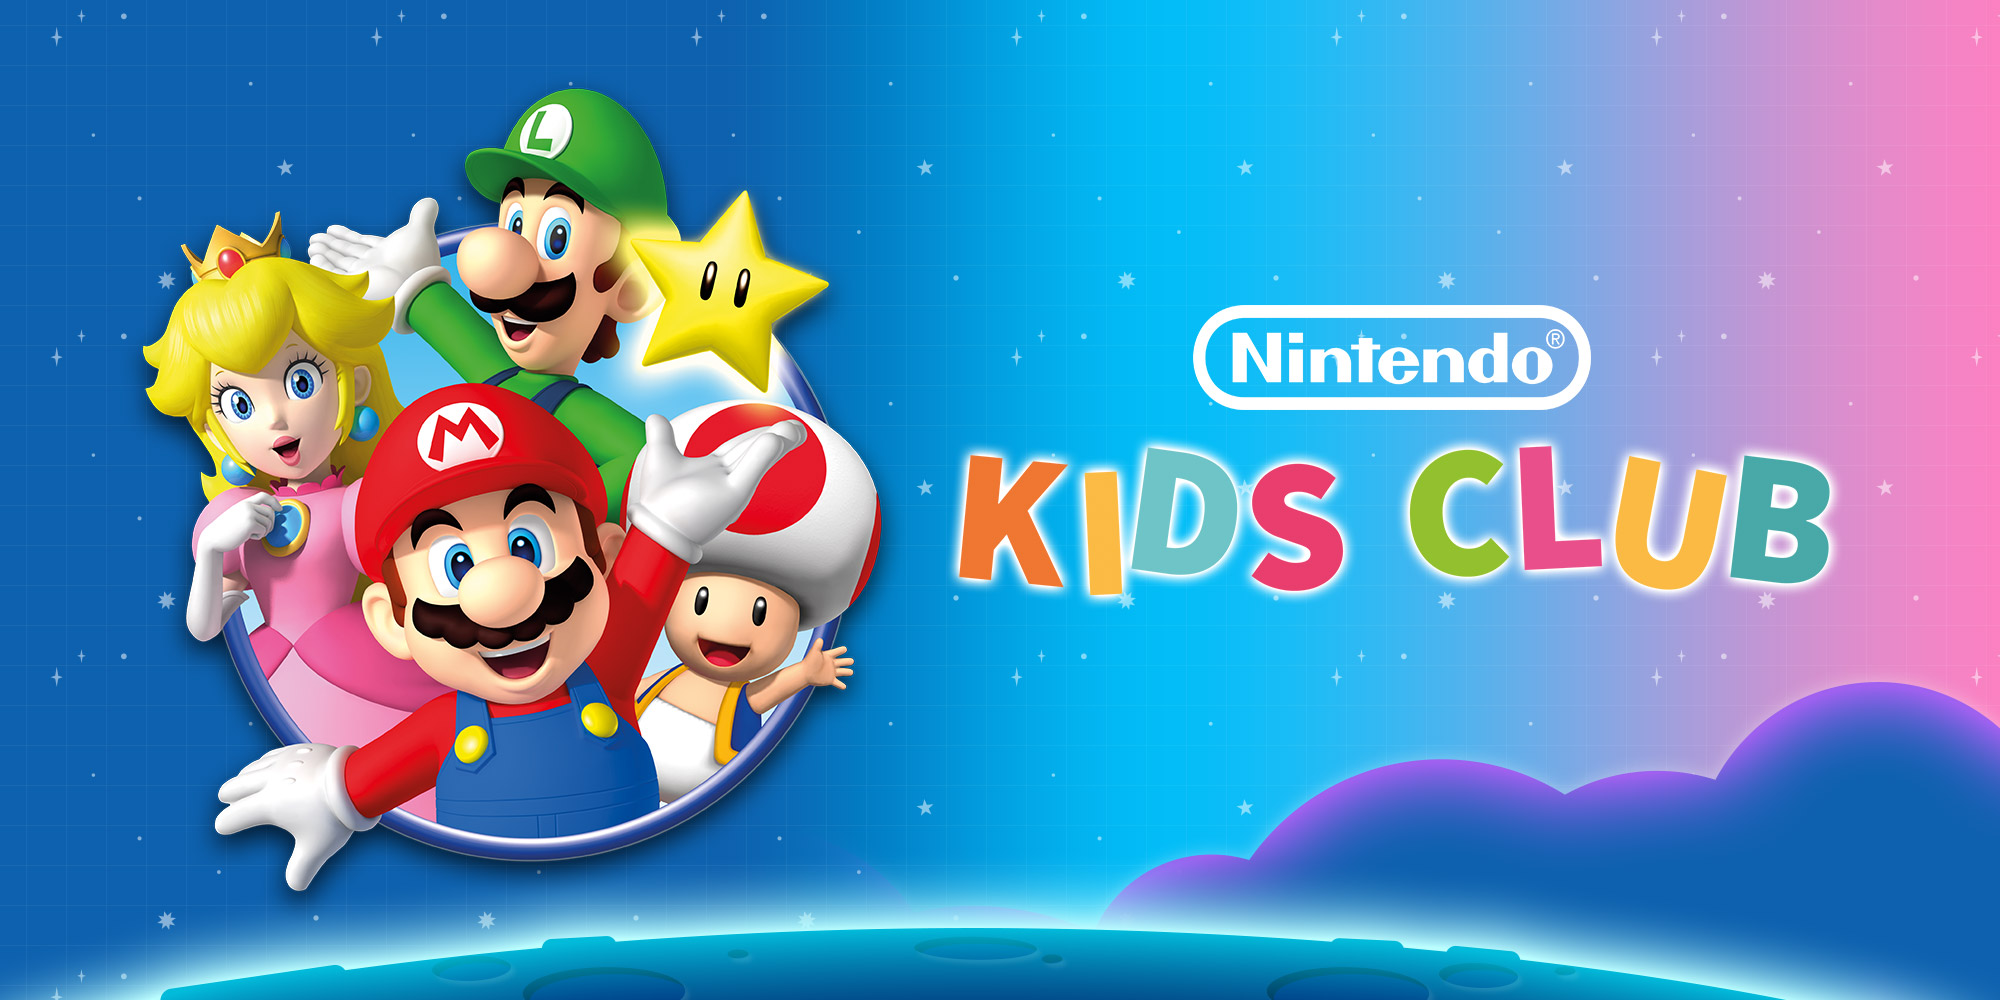 Check out fun games, activities, quizzes and more in our latest Nintendo Kids Club update!